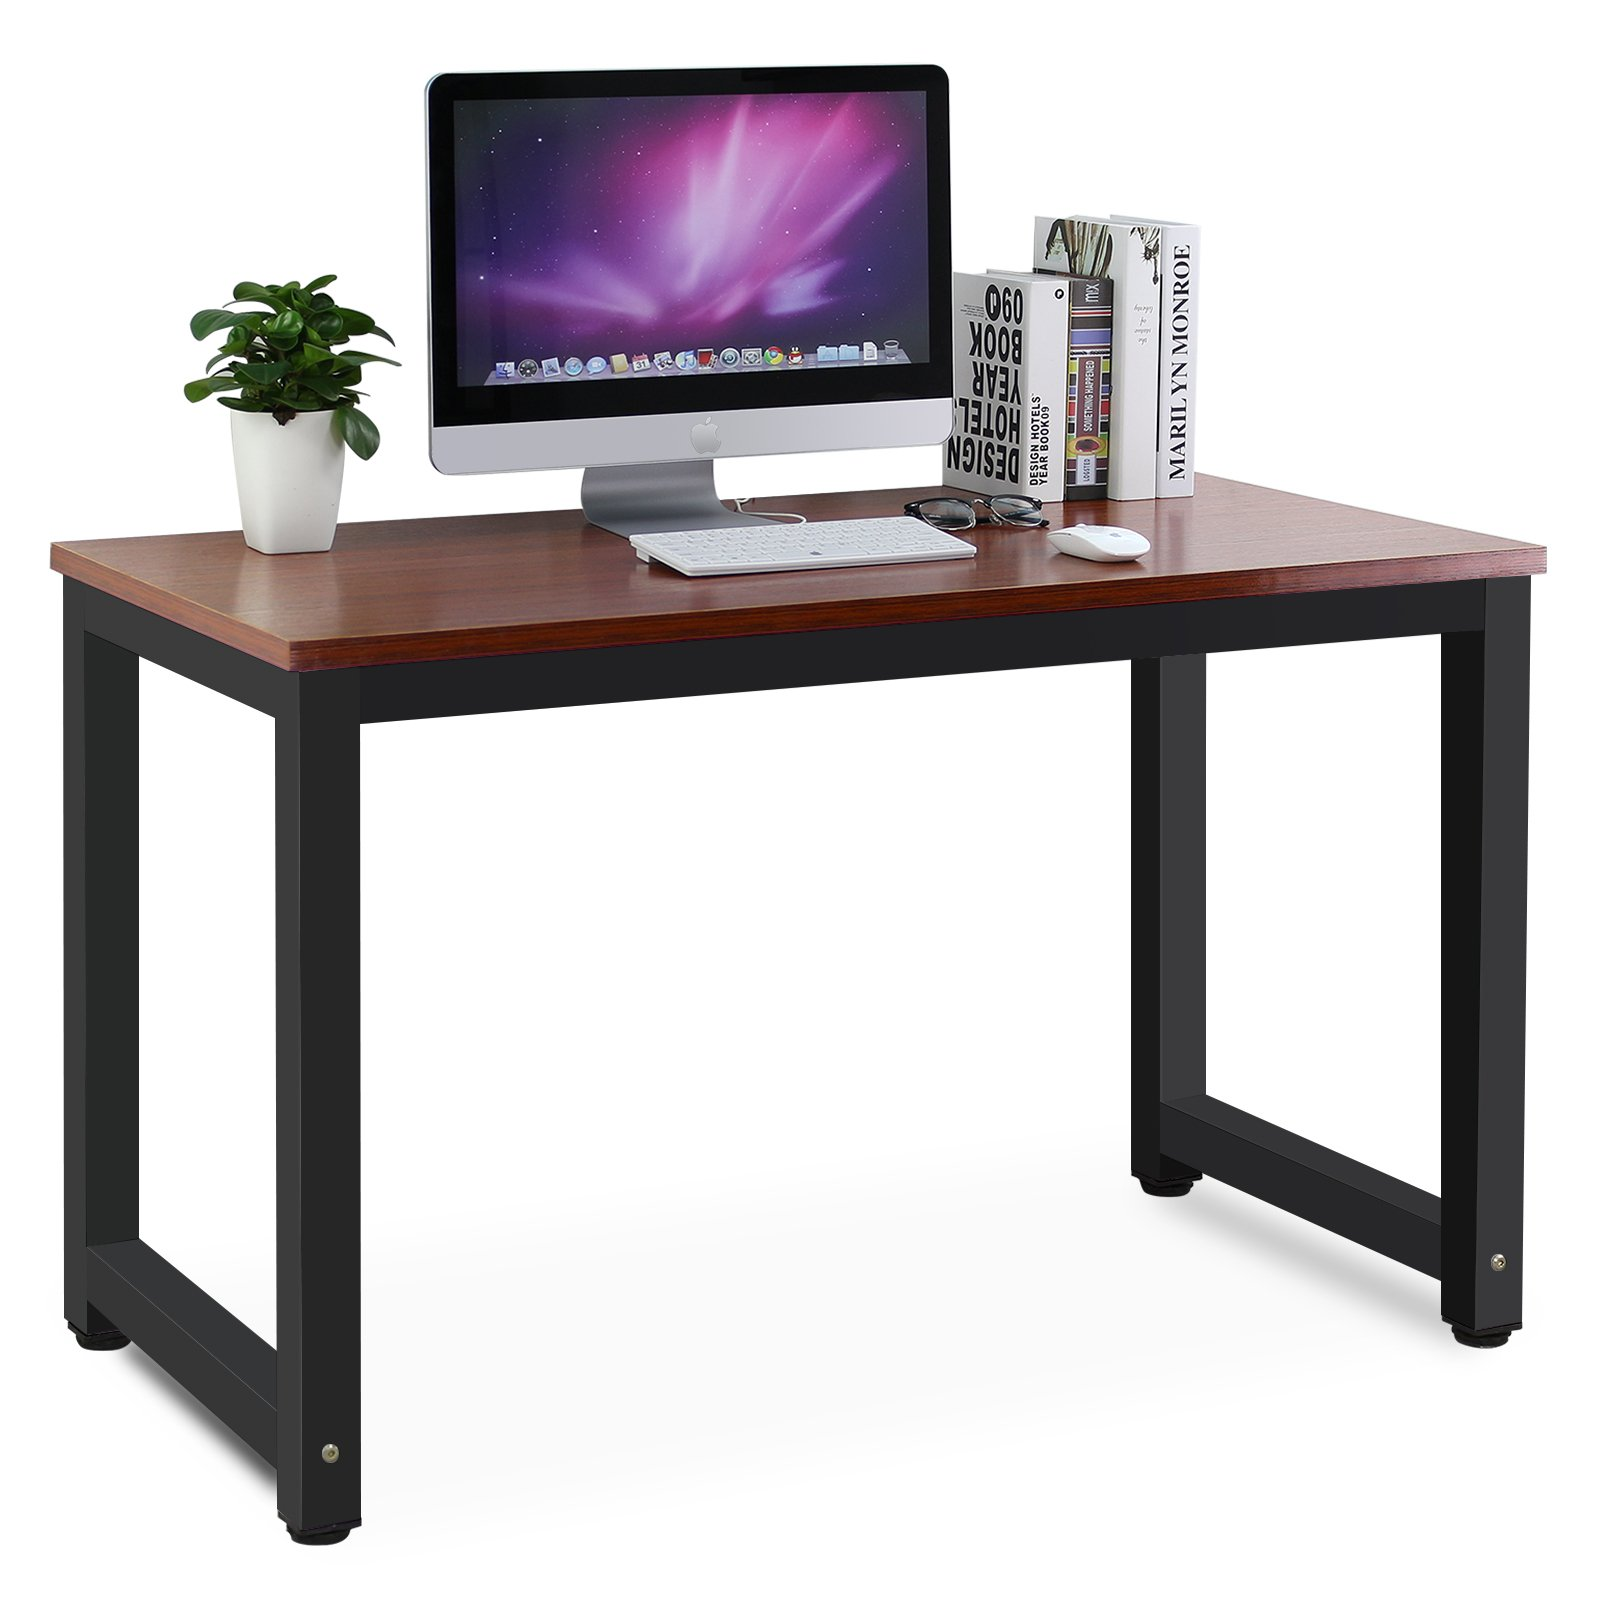 Tribesigns Modern Simple Style Computer Desk PC Laptop Study Table Office Desk Workstation for Home Office, Teak + Black Leg by Tribesigns